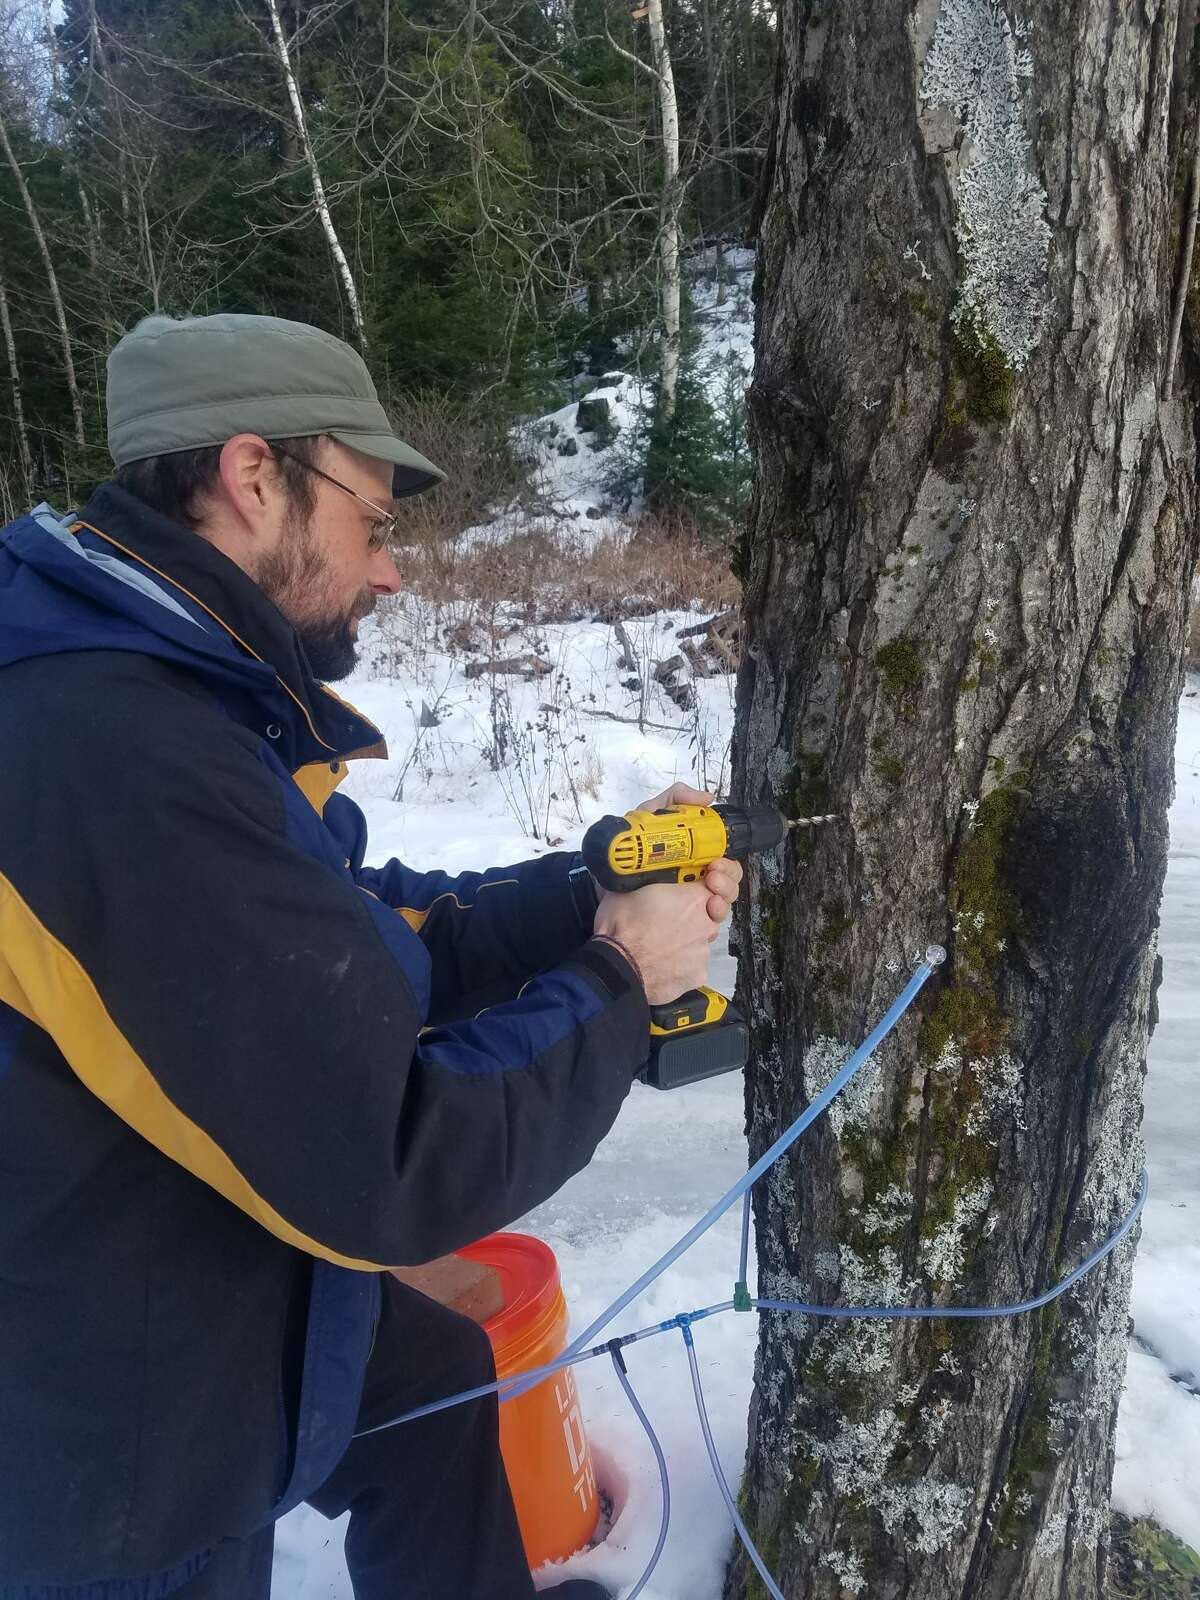 Tapping sugar maple trees to collect sap for making maple syrup.